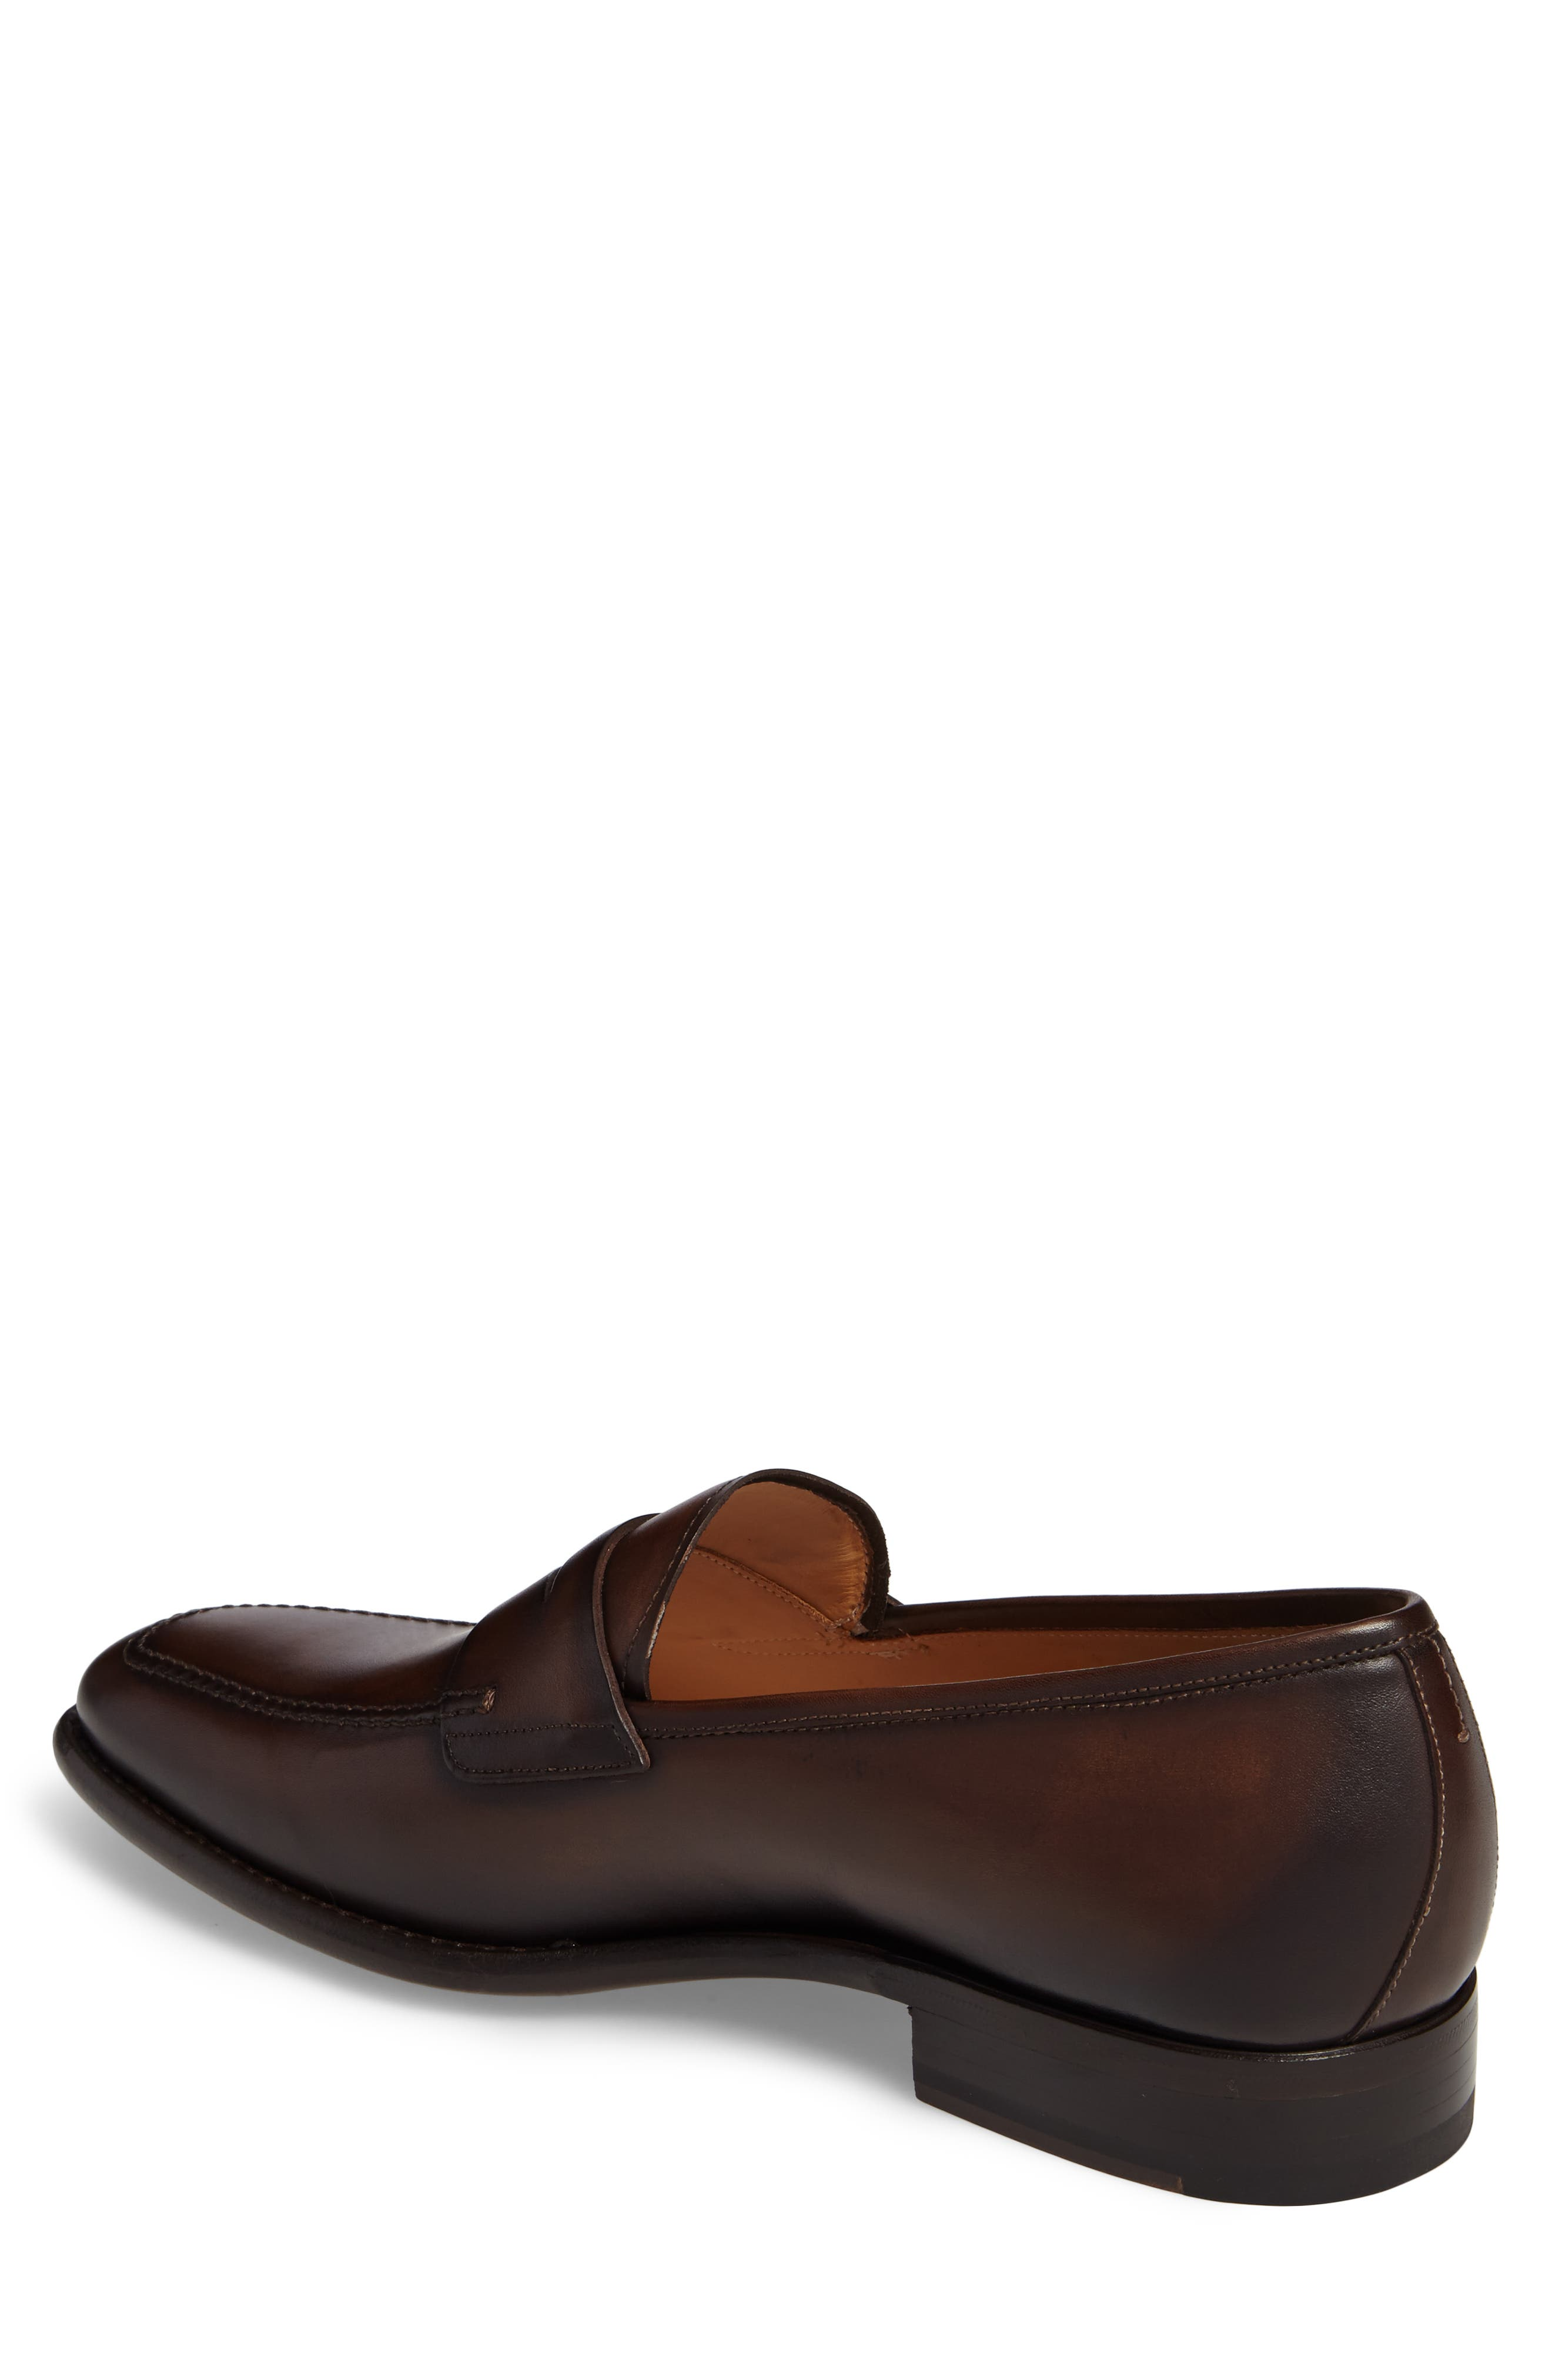 Claude Penny Loafer,                             Alternate thumbnail 2, color,                             BROWN LEATHER